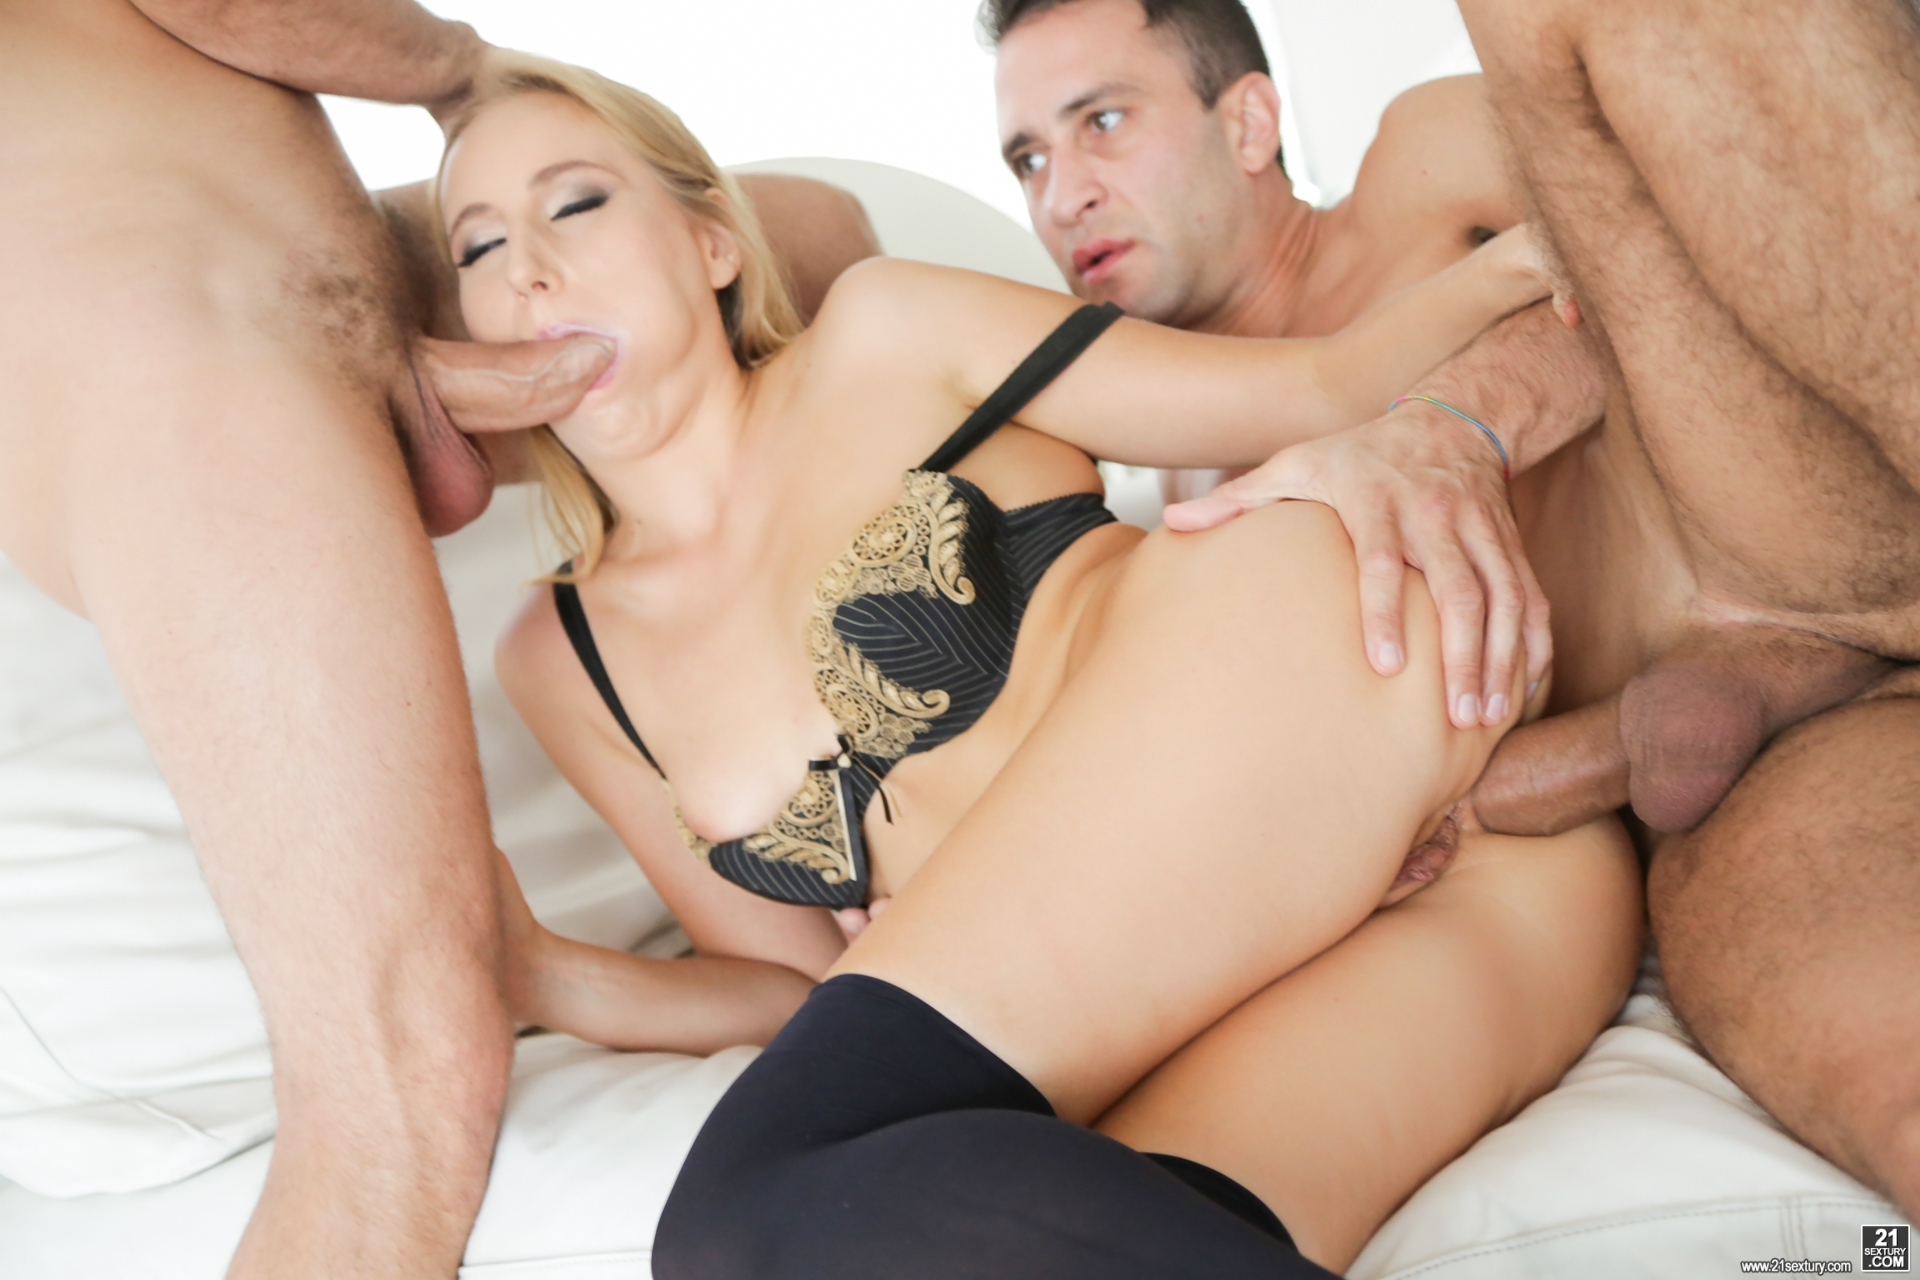 London andrews handjob